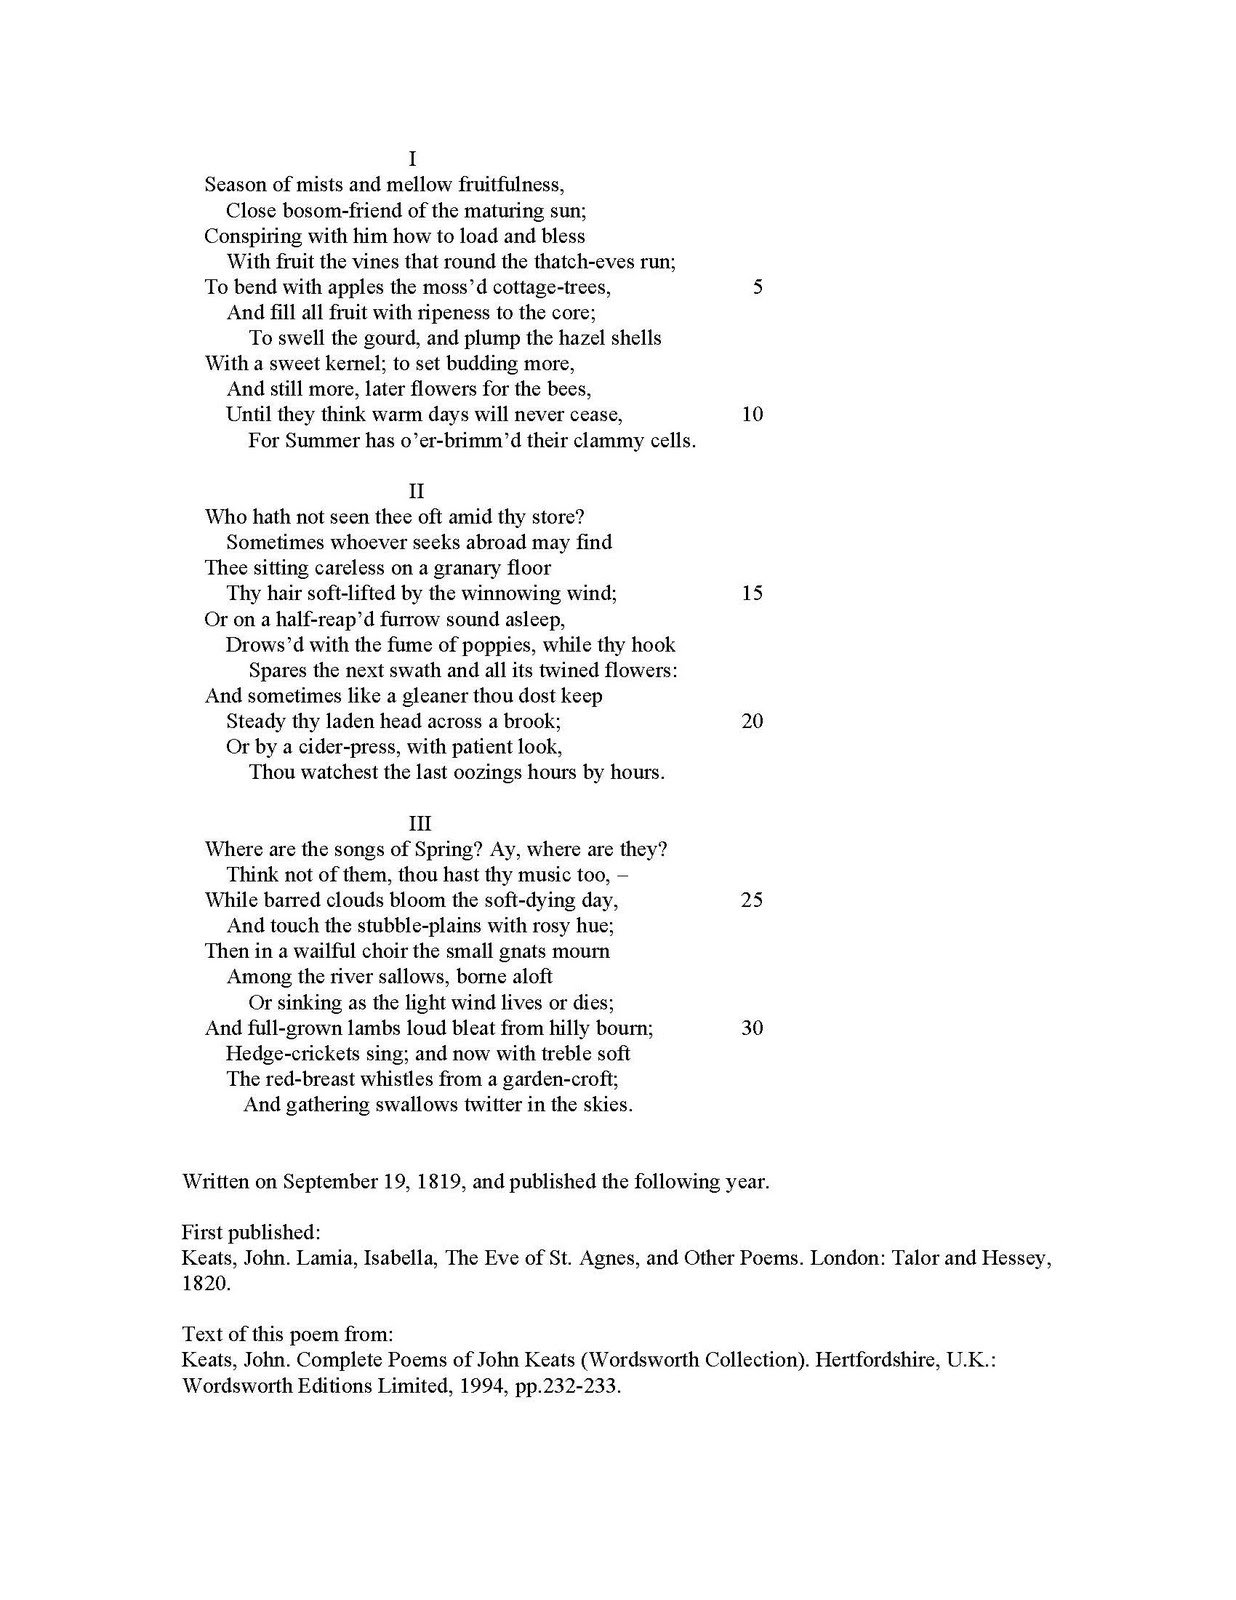 essay on john keats poetry John keats - ode on a grecian urn ode on a grecian urn new topic ode on a grecian urn shmoop grecian urn john keats the romantic poems of john keats new topic john keats autumn analysis keats new topic meaning of bright star by john keats horation ode ode to a nightingale.